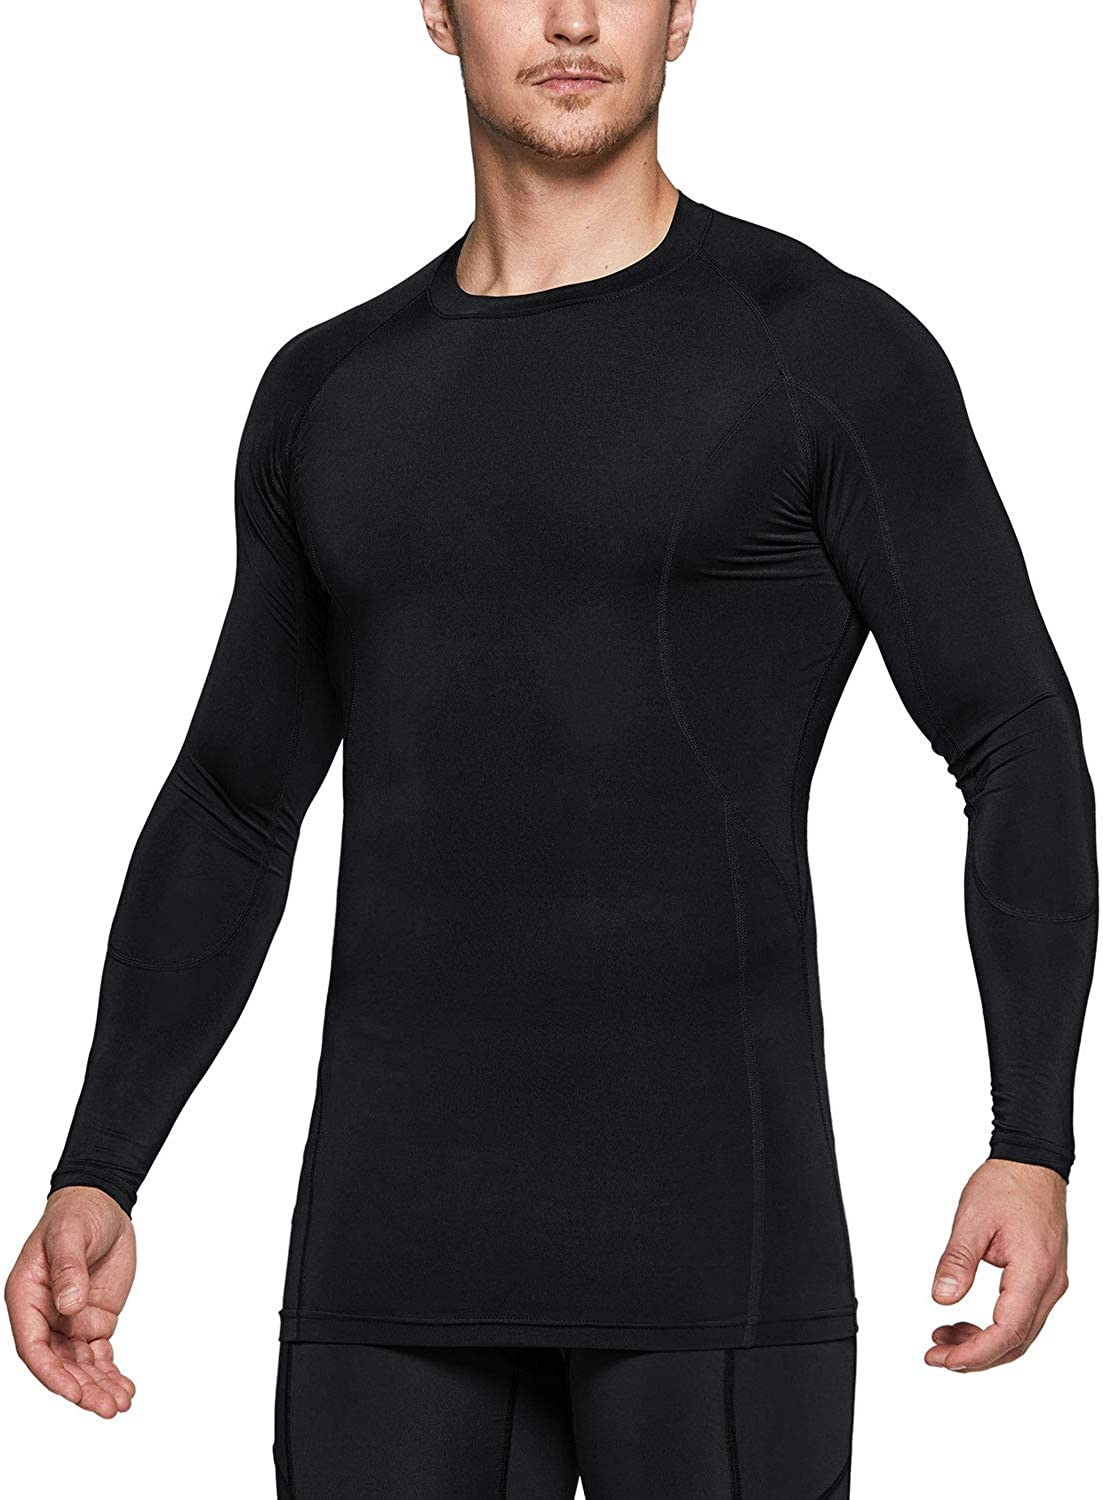 TSLA 1 or 2 Pack Men's Cool Dry Fit Long Sleeve Compression Shirts, Athletic Workout Shirt, Active Sports Base Layer T-Shirt